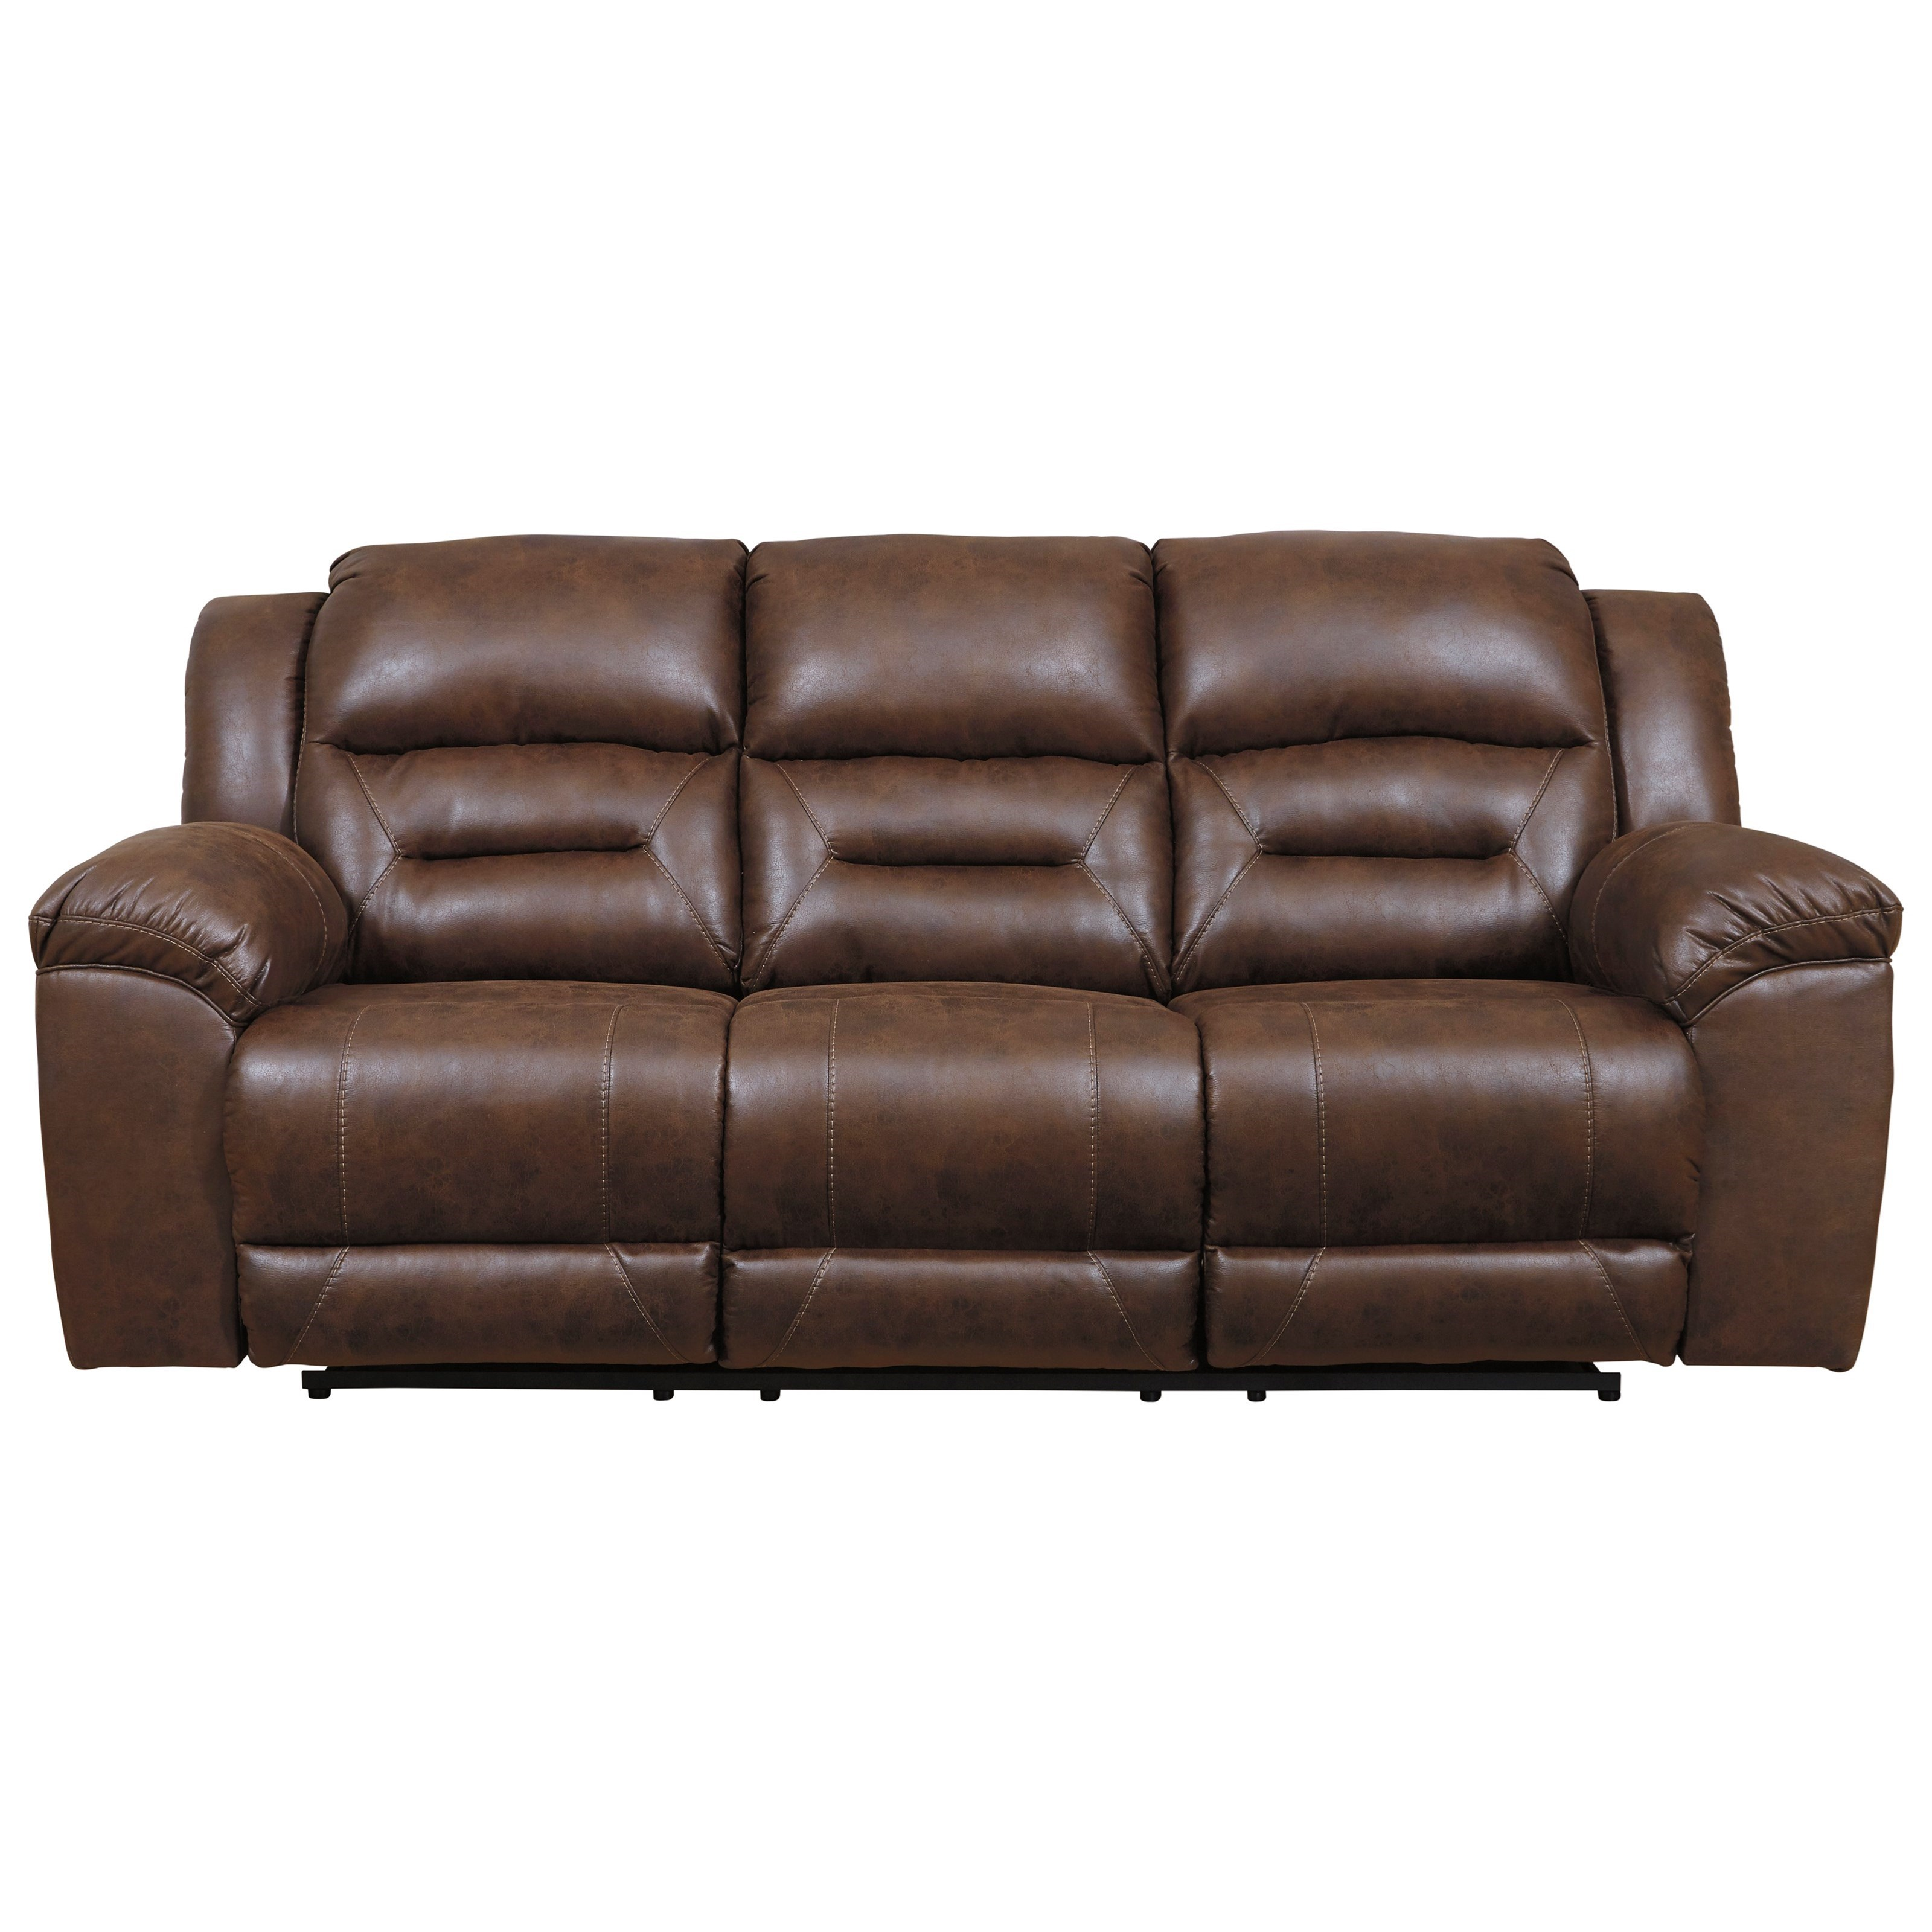 Stoneland Faux Leather Reclining Sofa by Signature Design by Ashley at  Royal Furniture